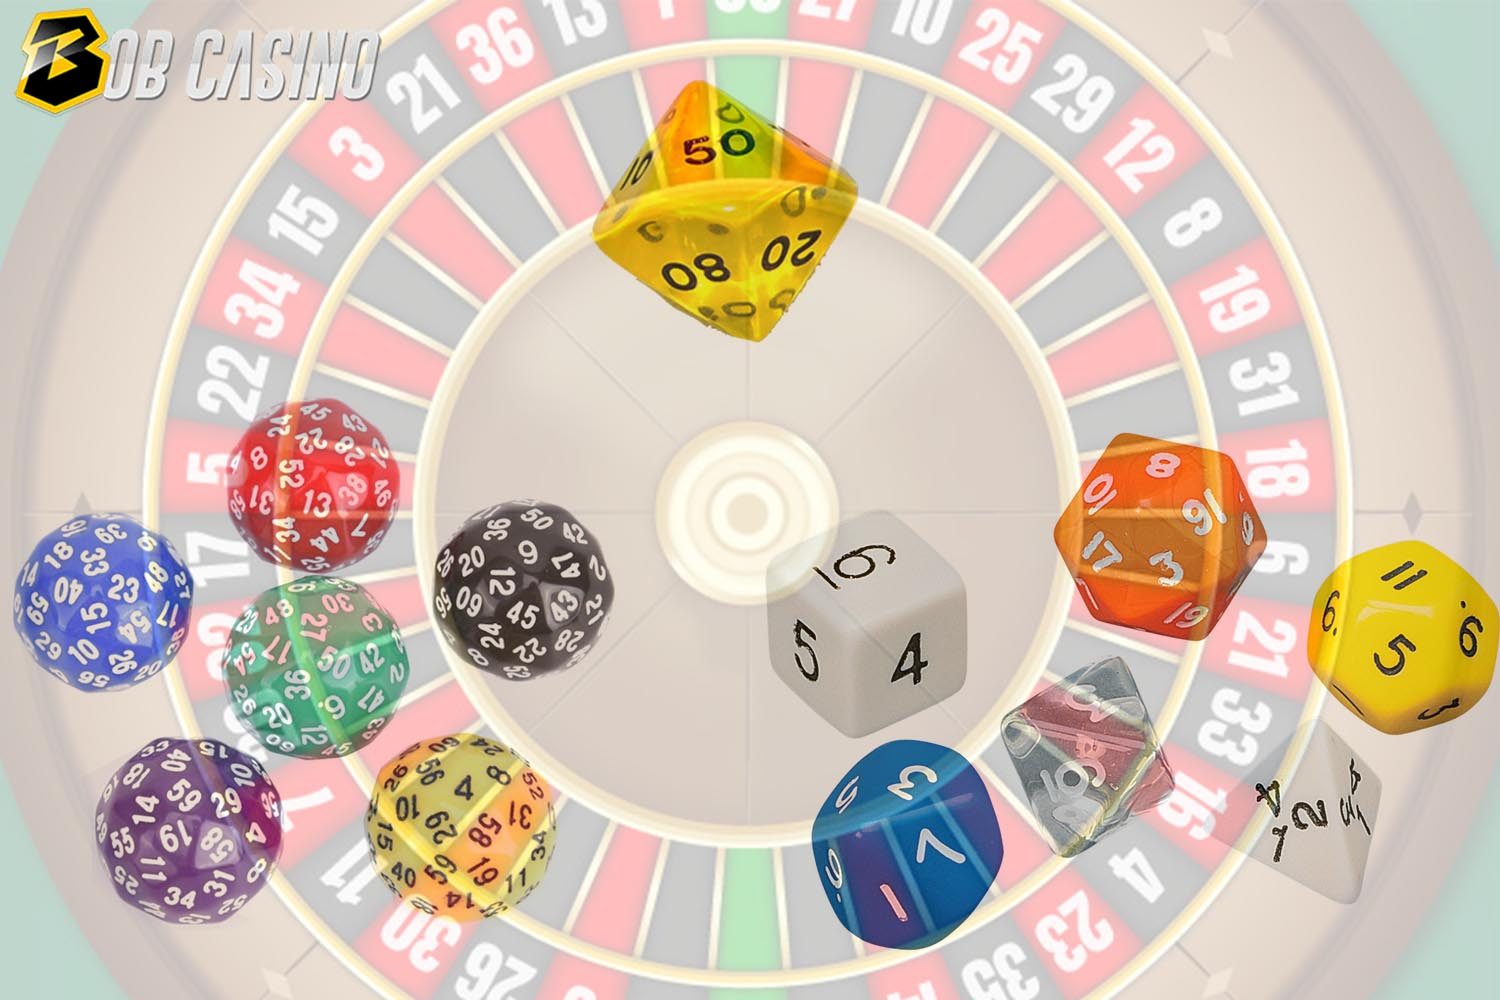 Platonic solid dice, Trapezohedron and other types of dices in roulette.